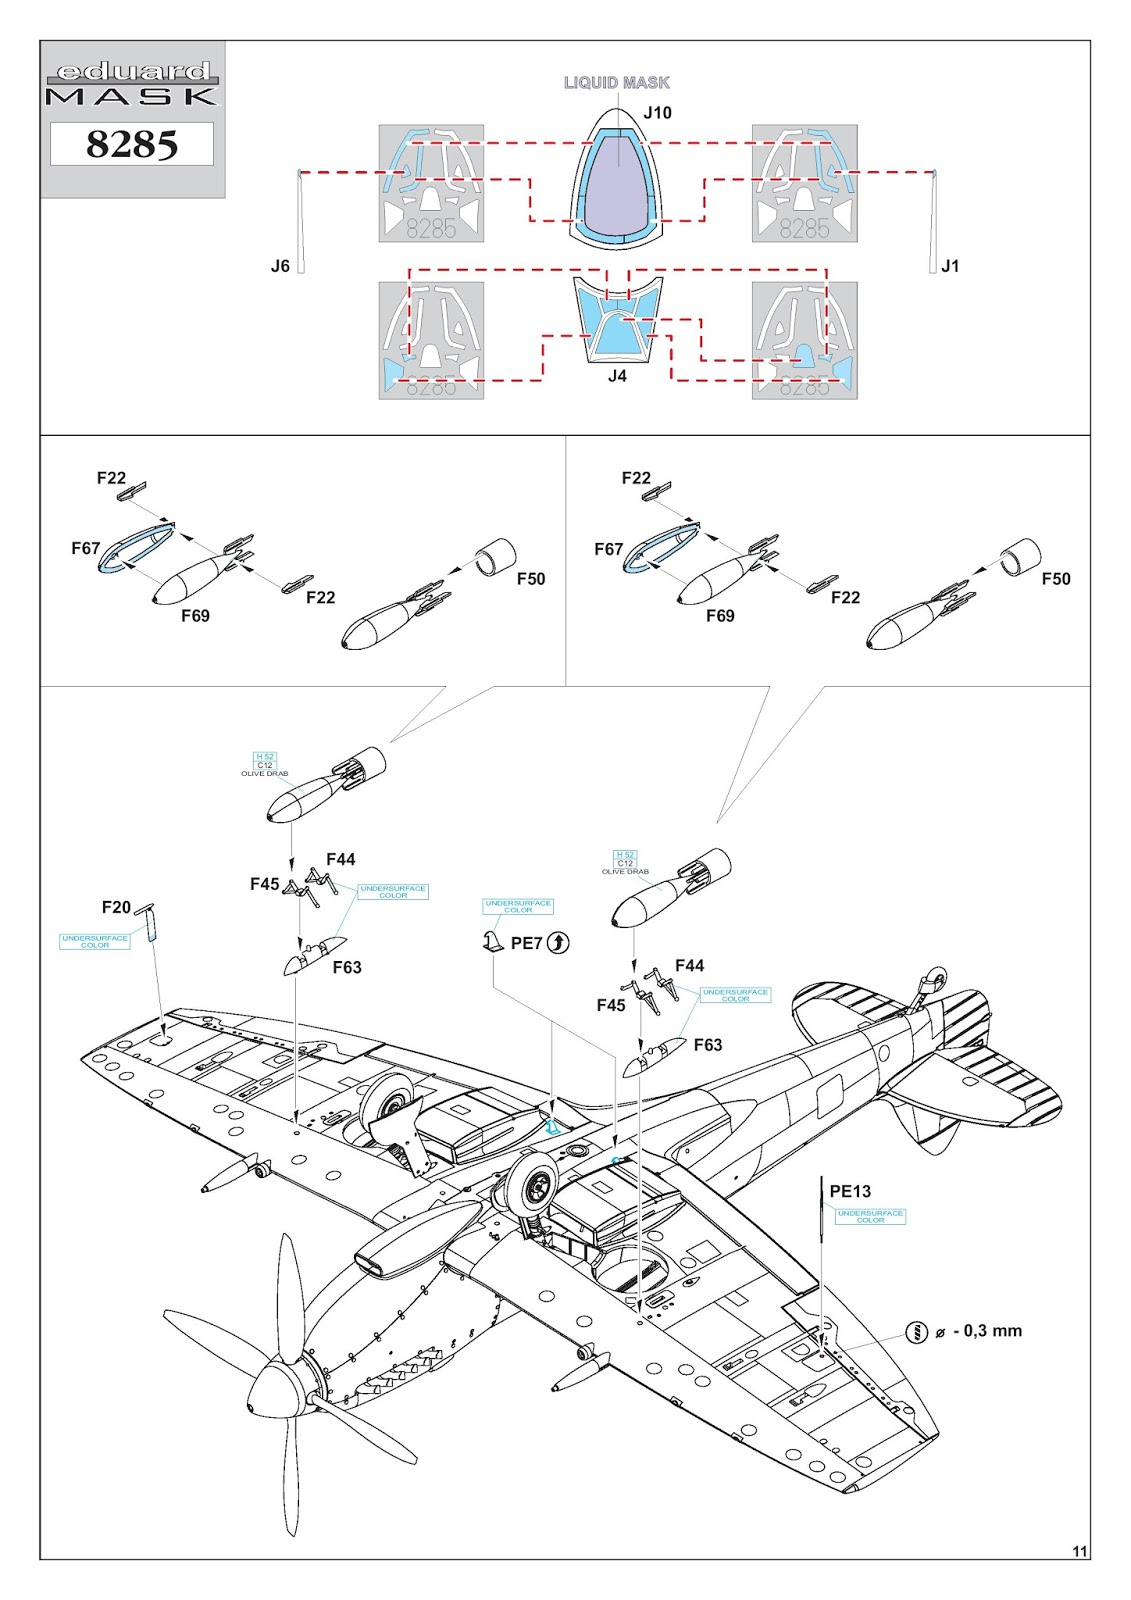 The Modelling News Build Review Jono Takes On Eduards 48th Scale F67 Wiring Diagram There Are Five Marking Choices In This Kit They Cover Some Interesting Schemes Mostly From Very Late War And Post Periods Of Service 1945 49 Which